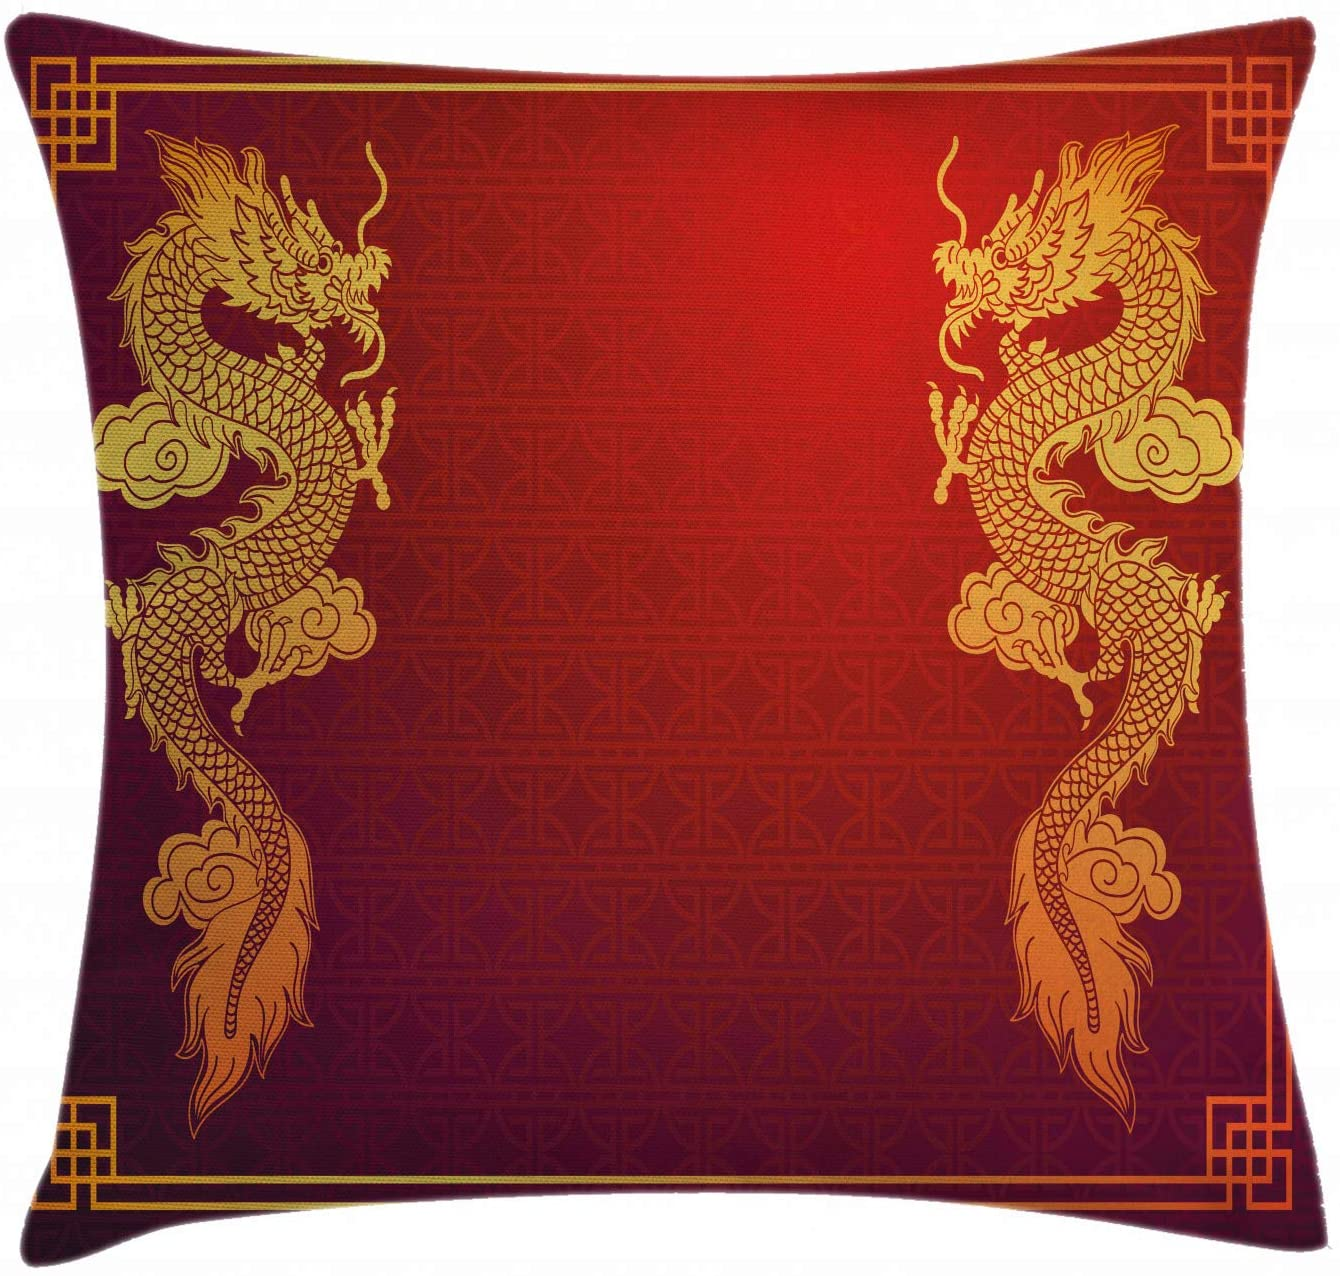 Ambesonne Dragon Throw Pillow Cushion Cover, Chinese Heritage Historical Eastern Motif with Creature Design, Decorative Square Accent Pillow Case, 16